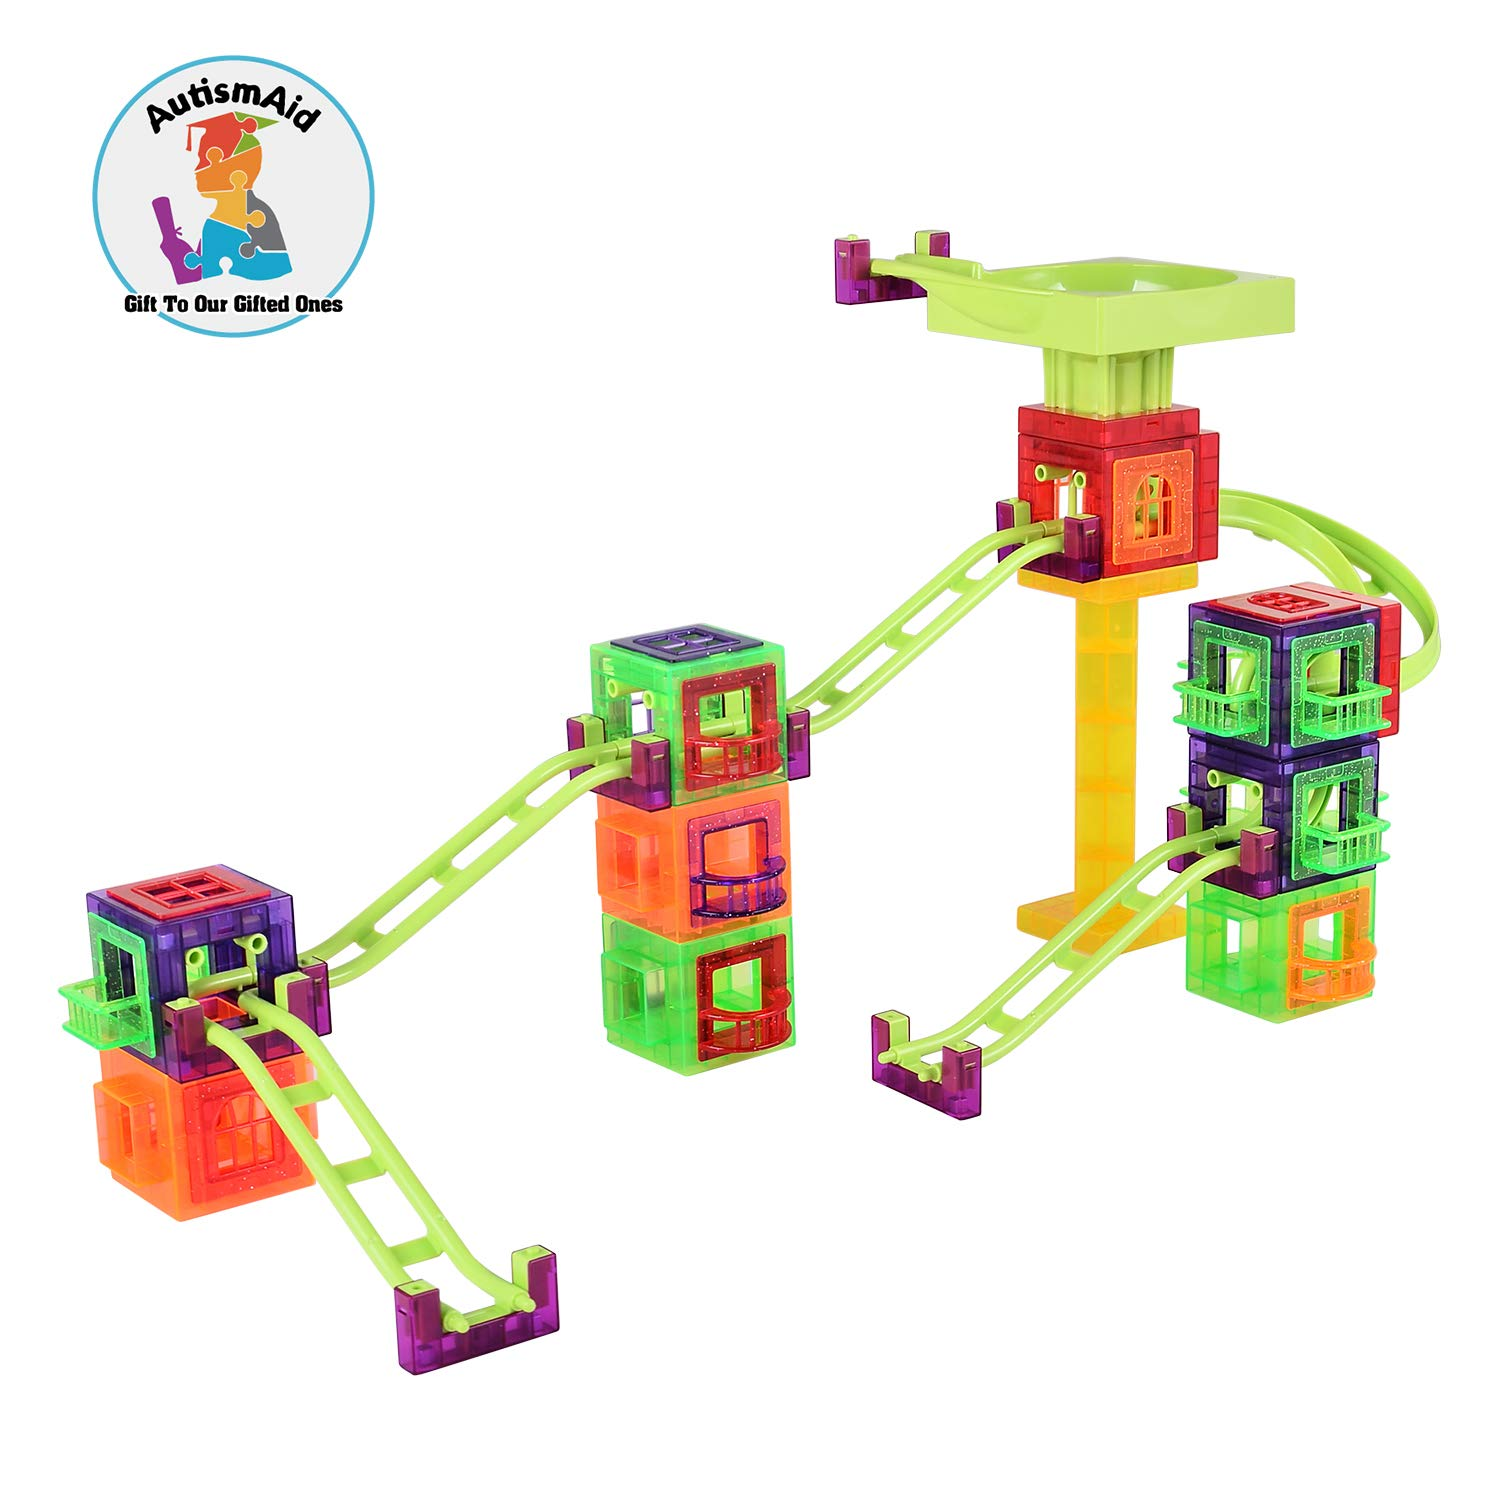 AutismAid Steam Mag Coaster 56 Pcs DIY Magnetic Puzzle Toys Educational Roller Coaster Building Blocks Marble Set for Autistic Children ADHD OCD and Stress Relief